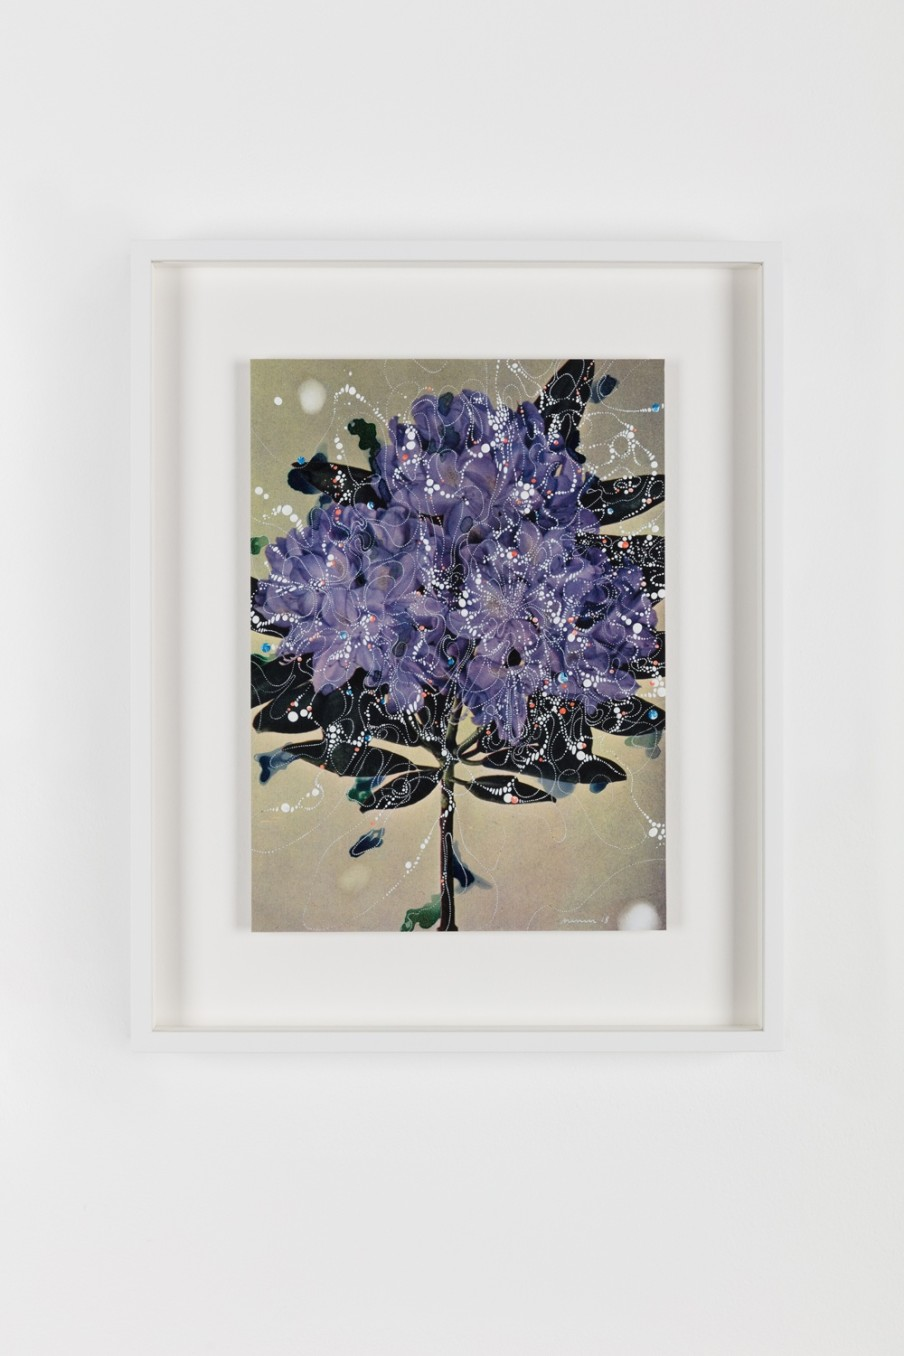 Sebastiaan Bremer, Rhododendron Catawbiense Boursault Sophie, 2018, Archival inkjet pigment print on resin coated paper with hand additions in acrylic, photo retouch dye, and pigment pen, 27.9 x 20.3 cm, 11 x 8 in, Framed: 38.6 x 31.1 x 3.7 cm, 15 1/4 x 1